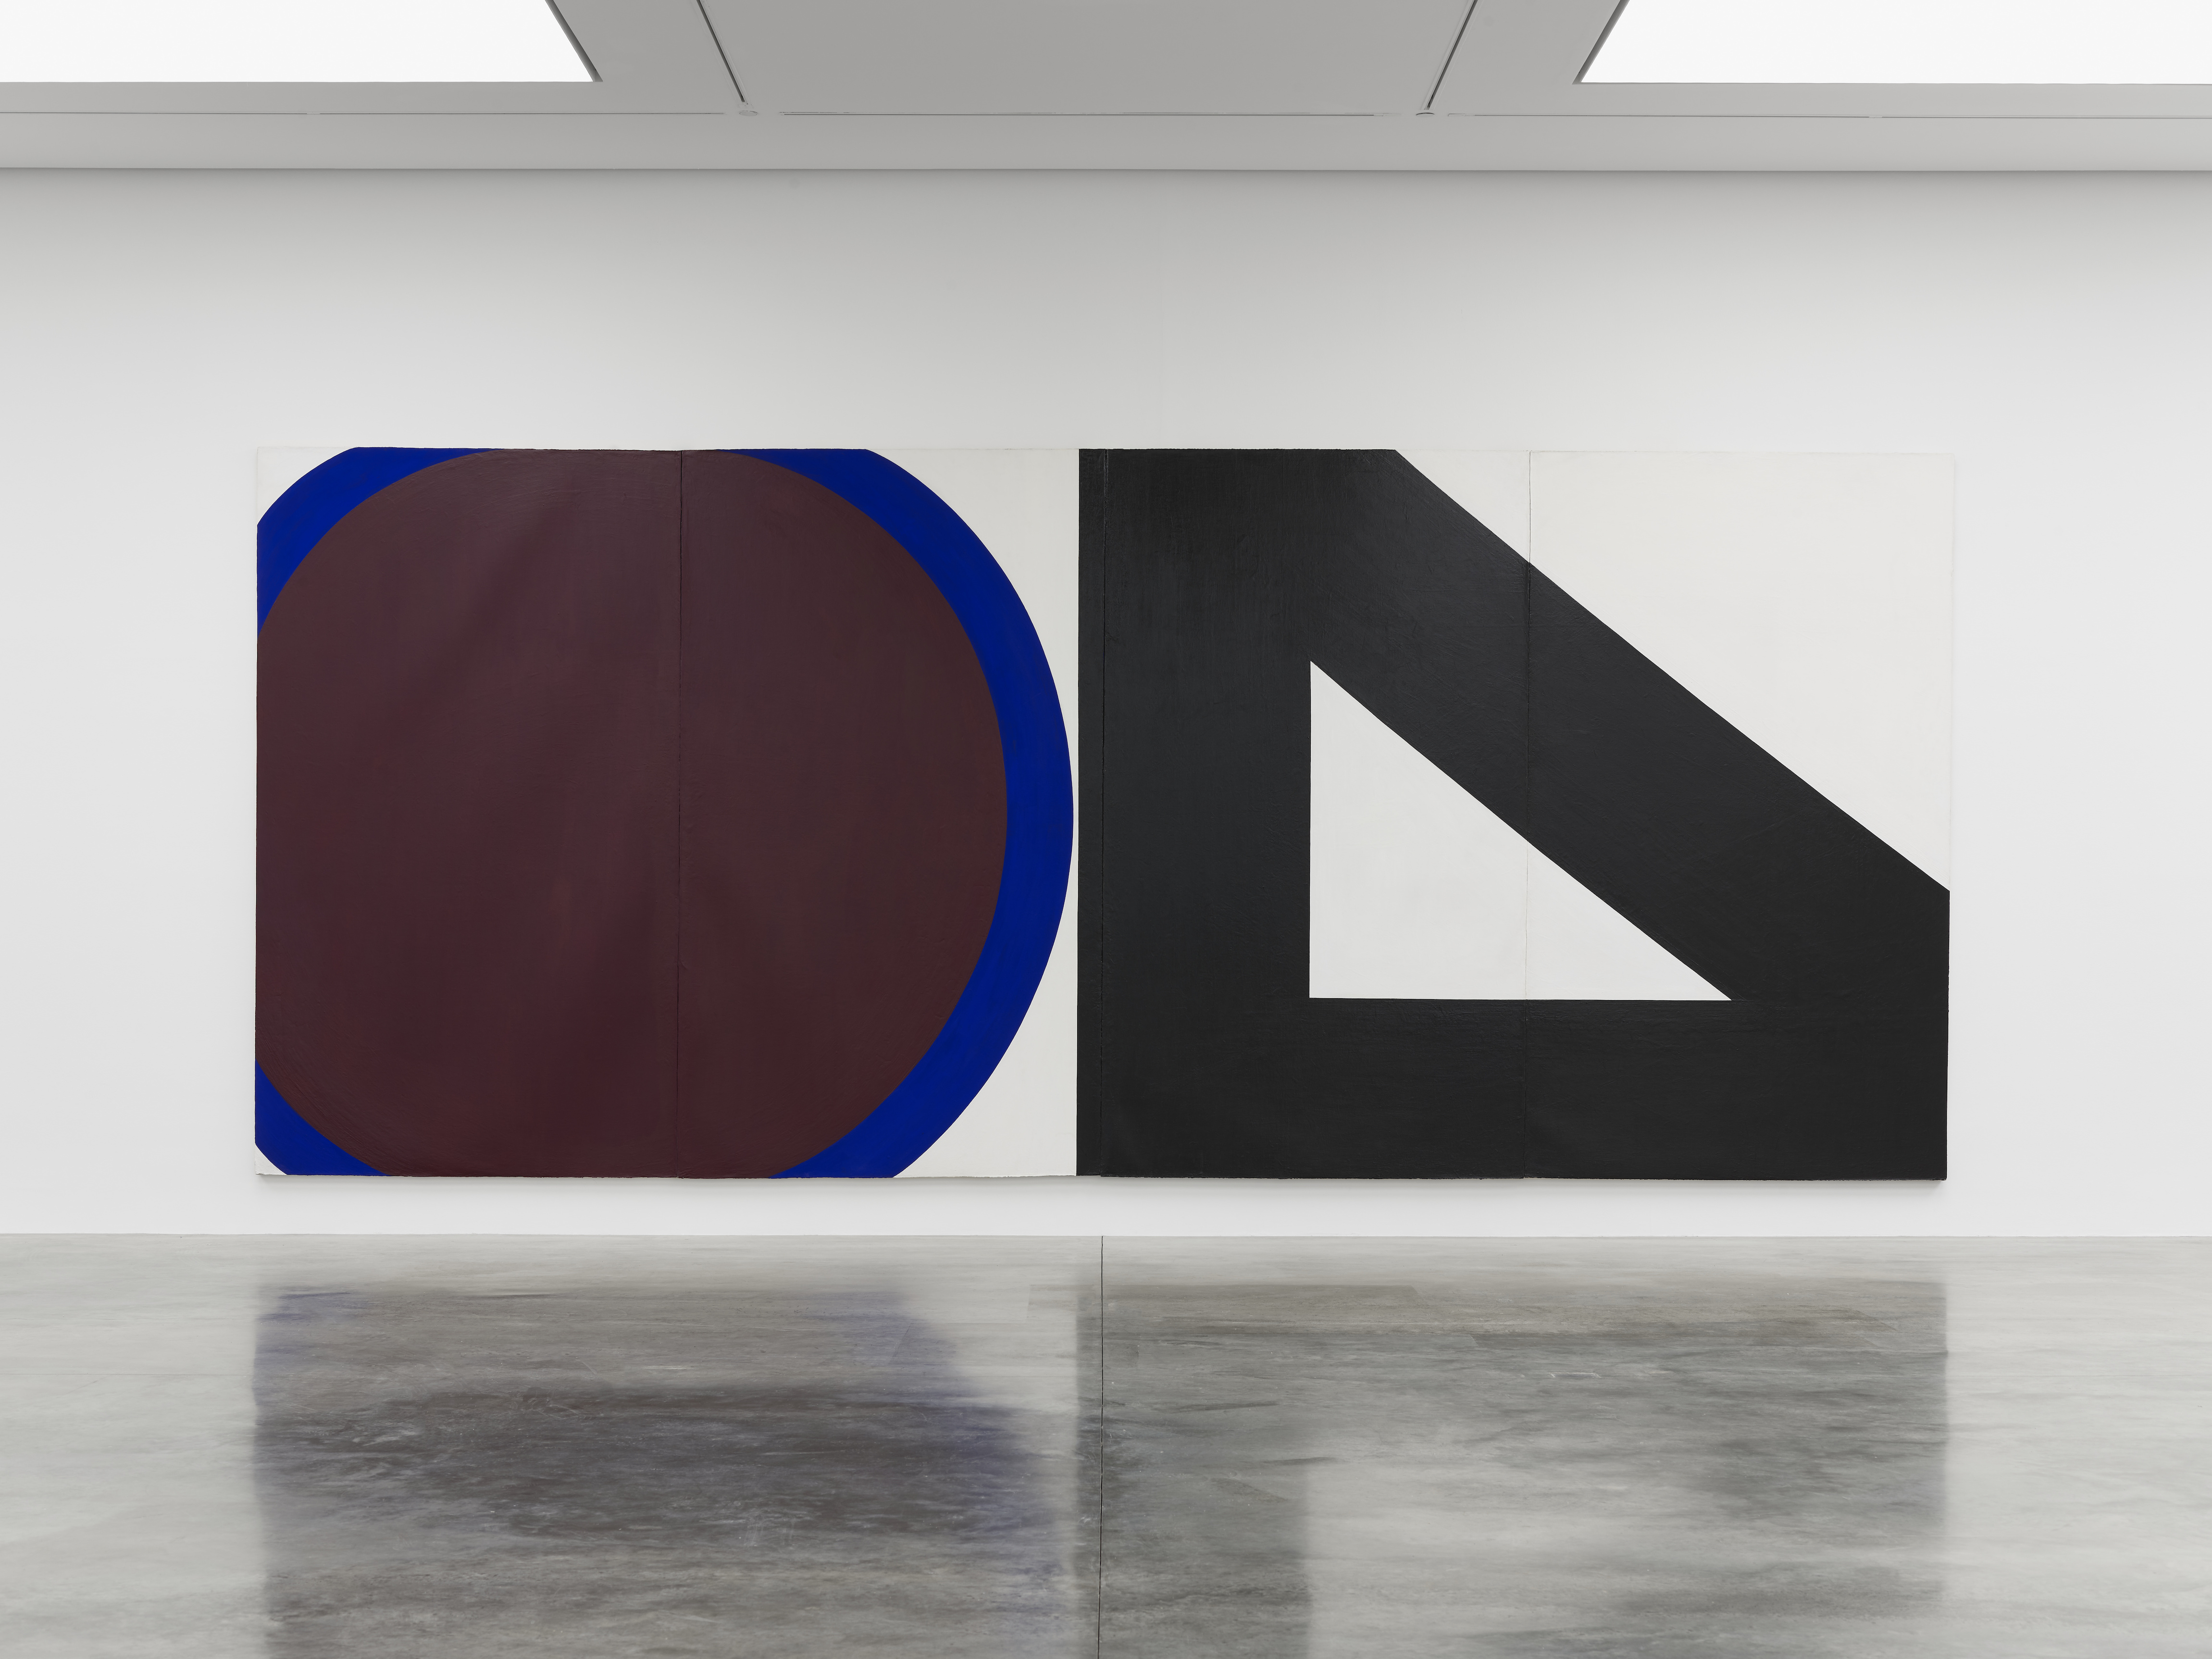 Installation view 2, 'Al Held: The Sixties' © the artist. Photo © White Cube (Theo Christelis)